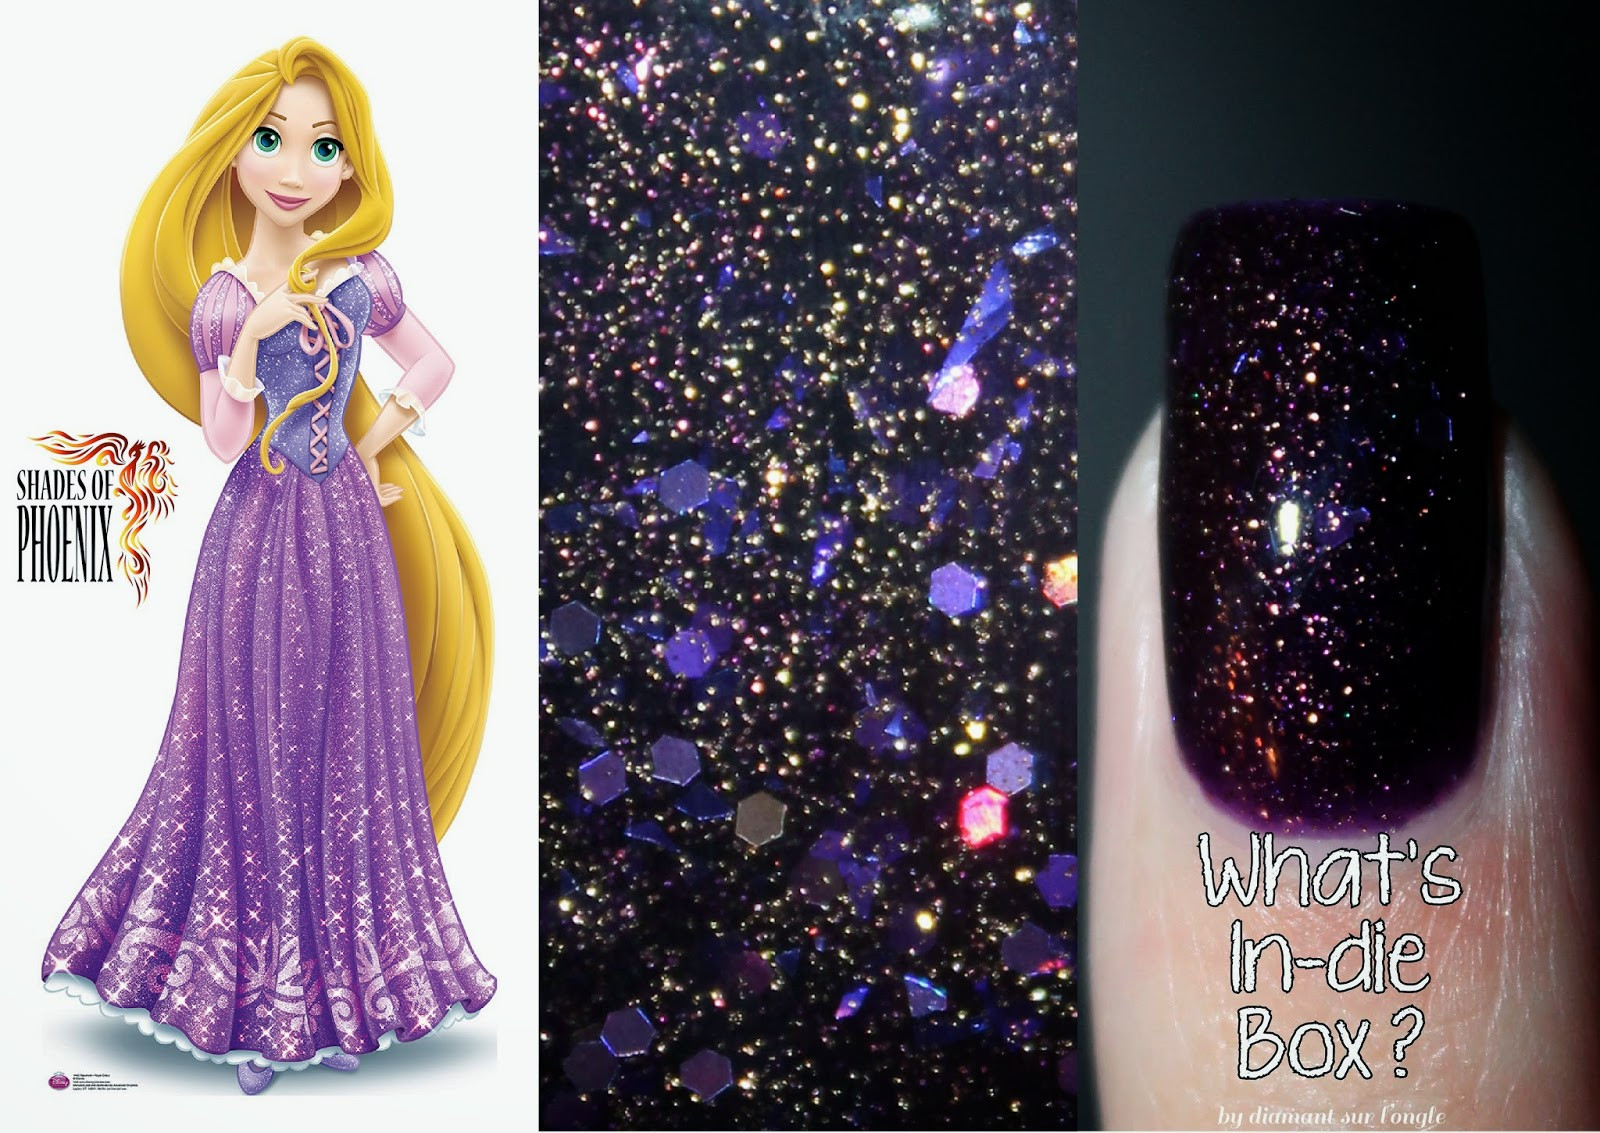 What's In-die Box March 2015 : Disney Princesses